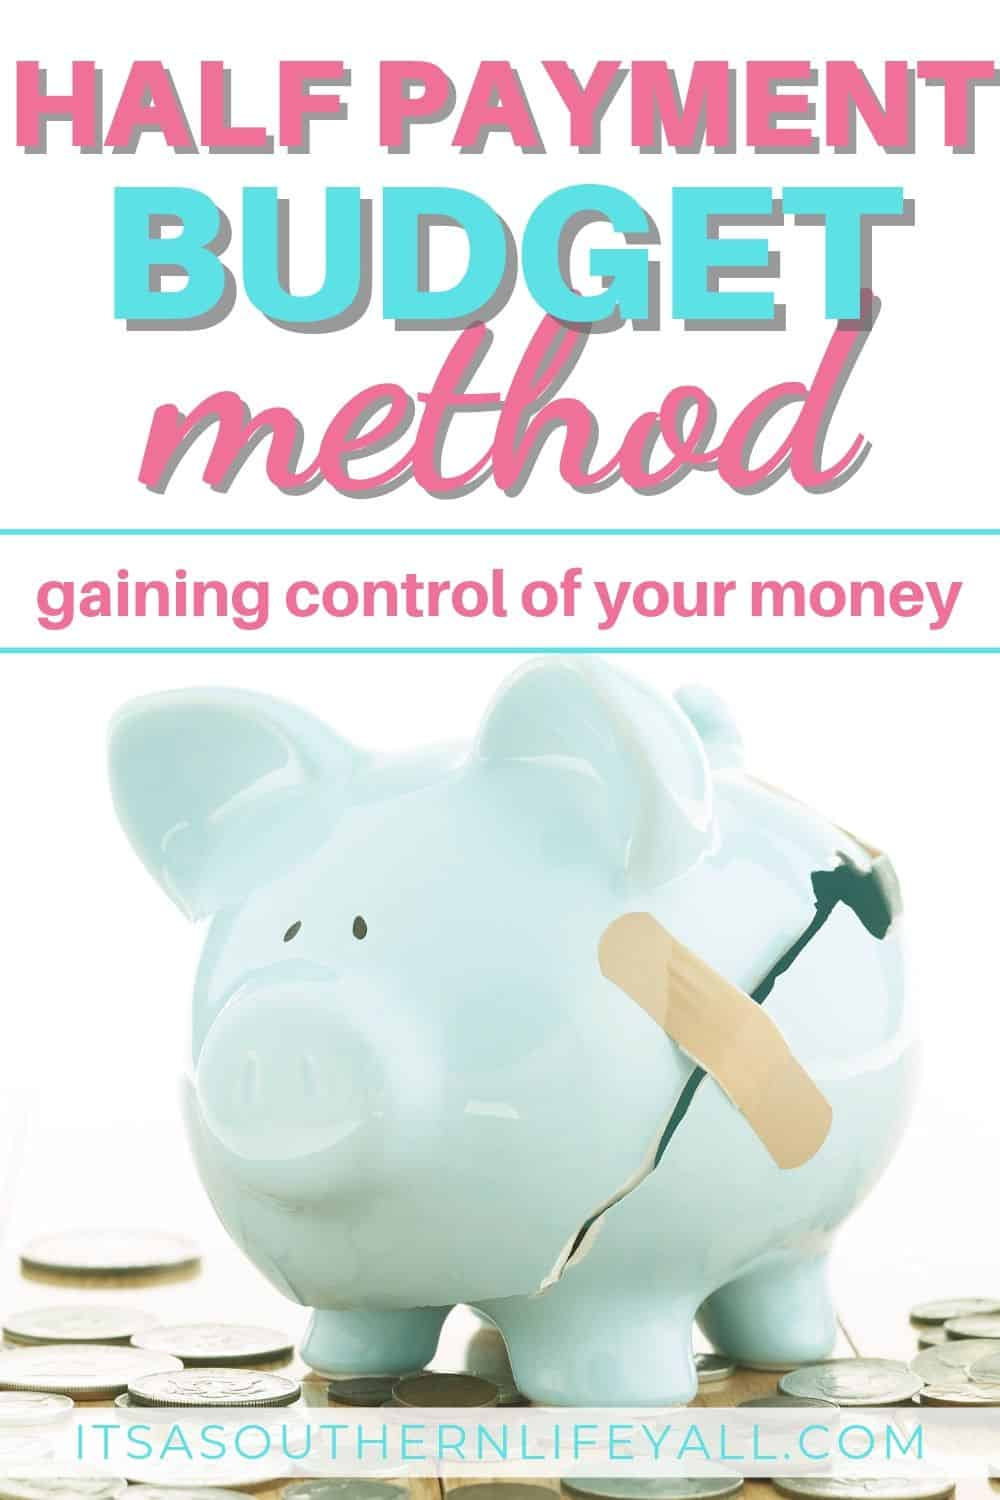 Half Payment Budget Method gaining control of your money text overlay on image of broken piggy bank with a bandage holding it together and money scattered on the floor.